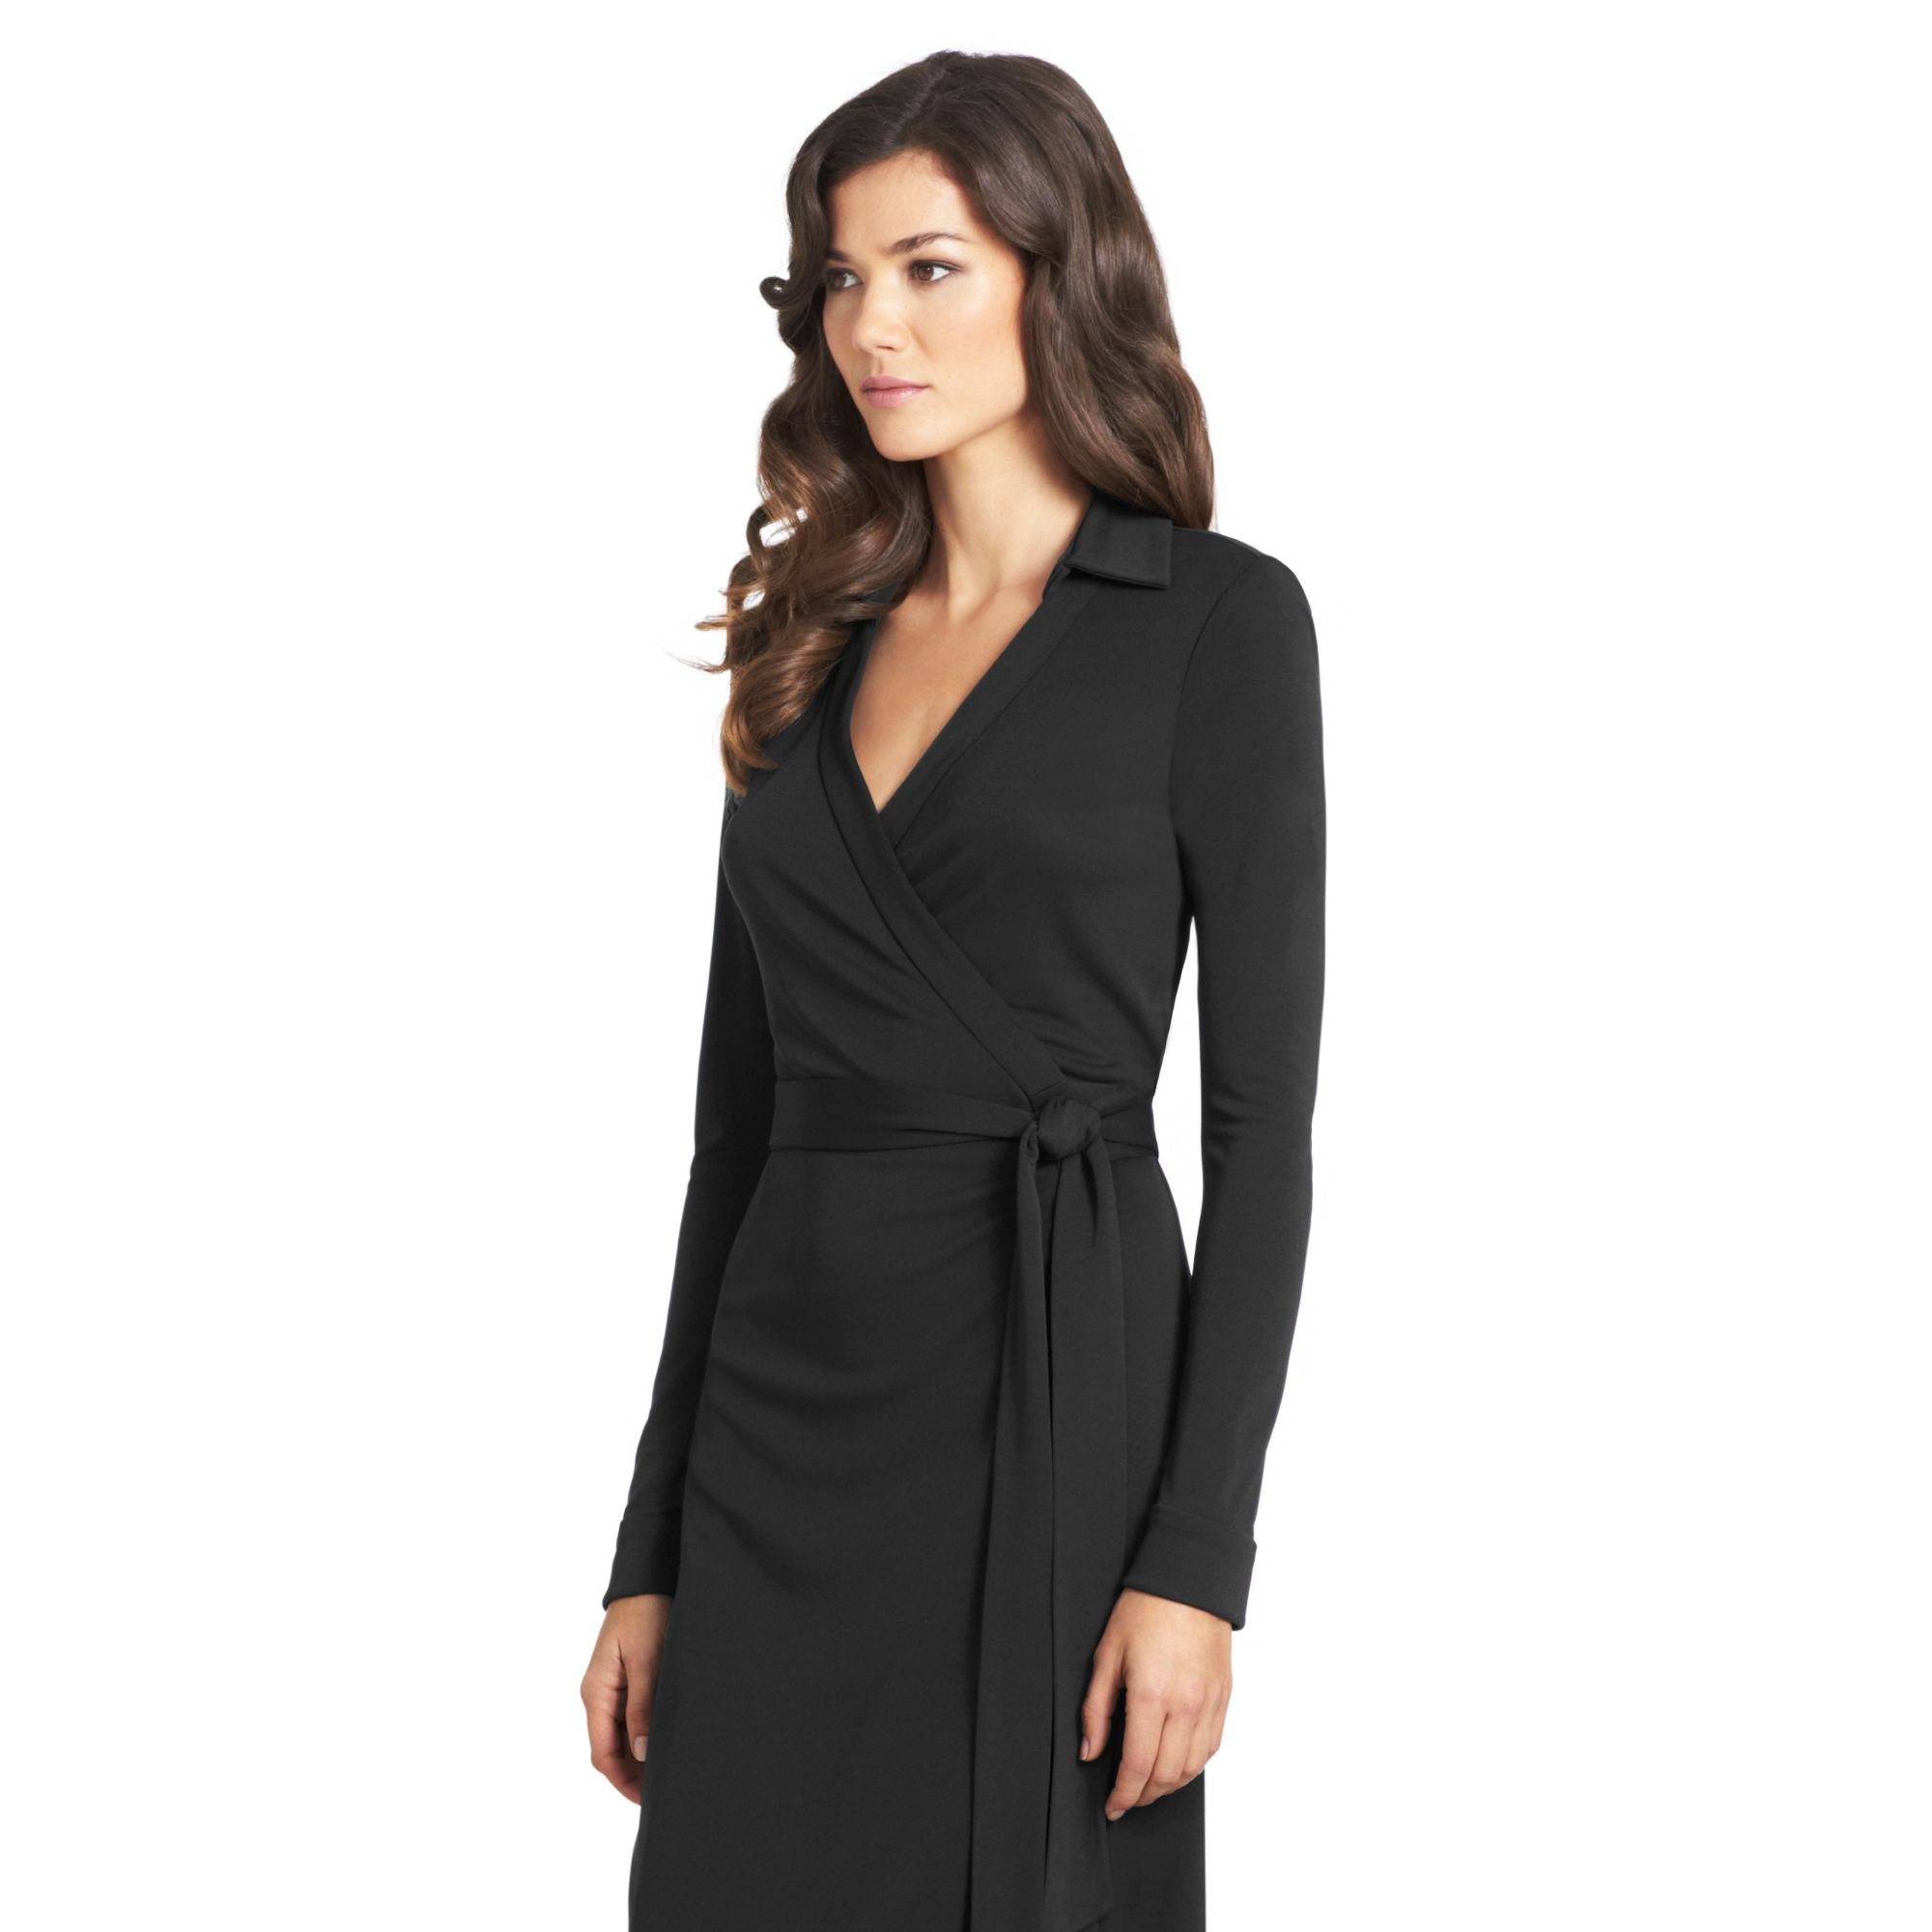 Shop black wrap dress at Neiman Marcus, where you will find free shipping on the latest in fashion from top designers. Co Burnout Long-Sleeve Wrap Dress, Black Details Co dress featuring abstract burnout design. High shawl collar with surplice front; hook-and-eye closure behind neck. More Details Jonathan Simkhai Sueded Jersey.